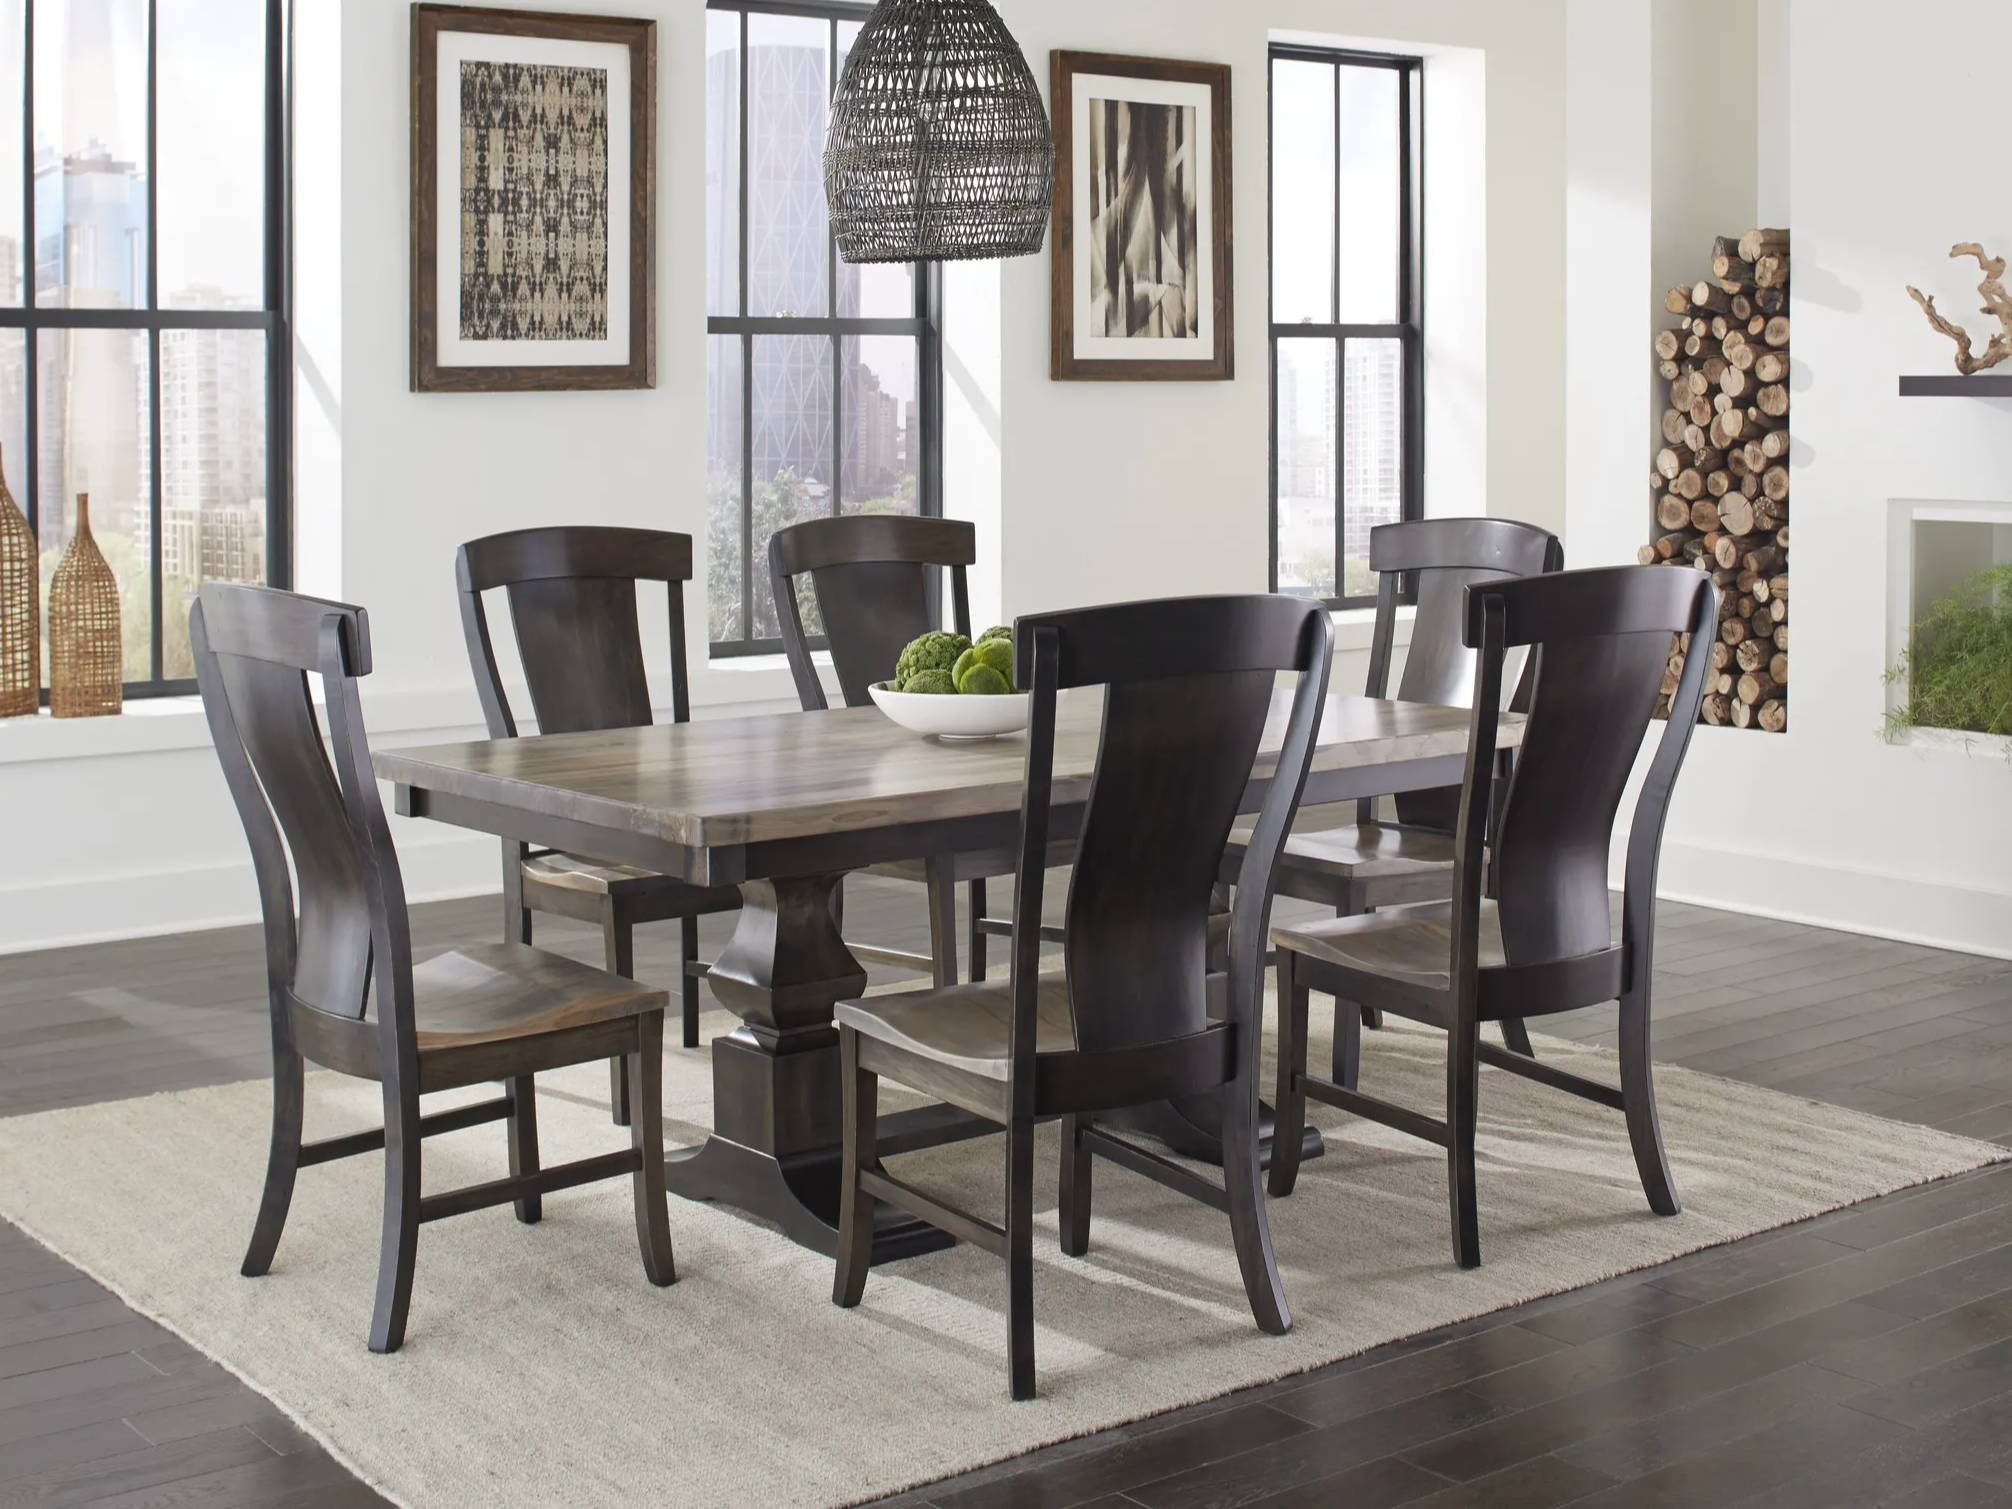 dining room scene with chairs around a dining table. Dining table top has a square edge